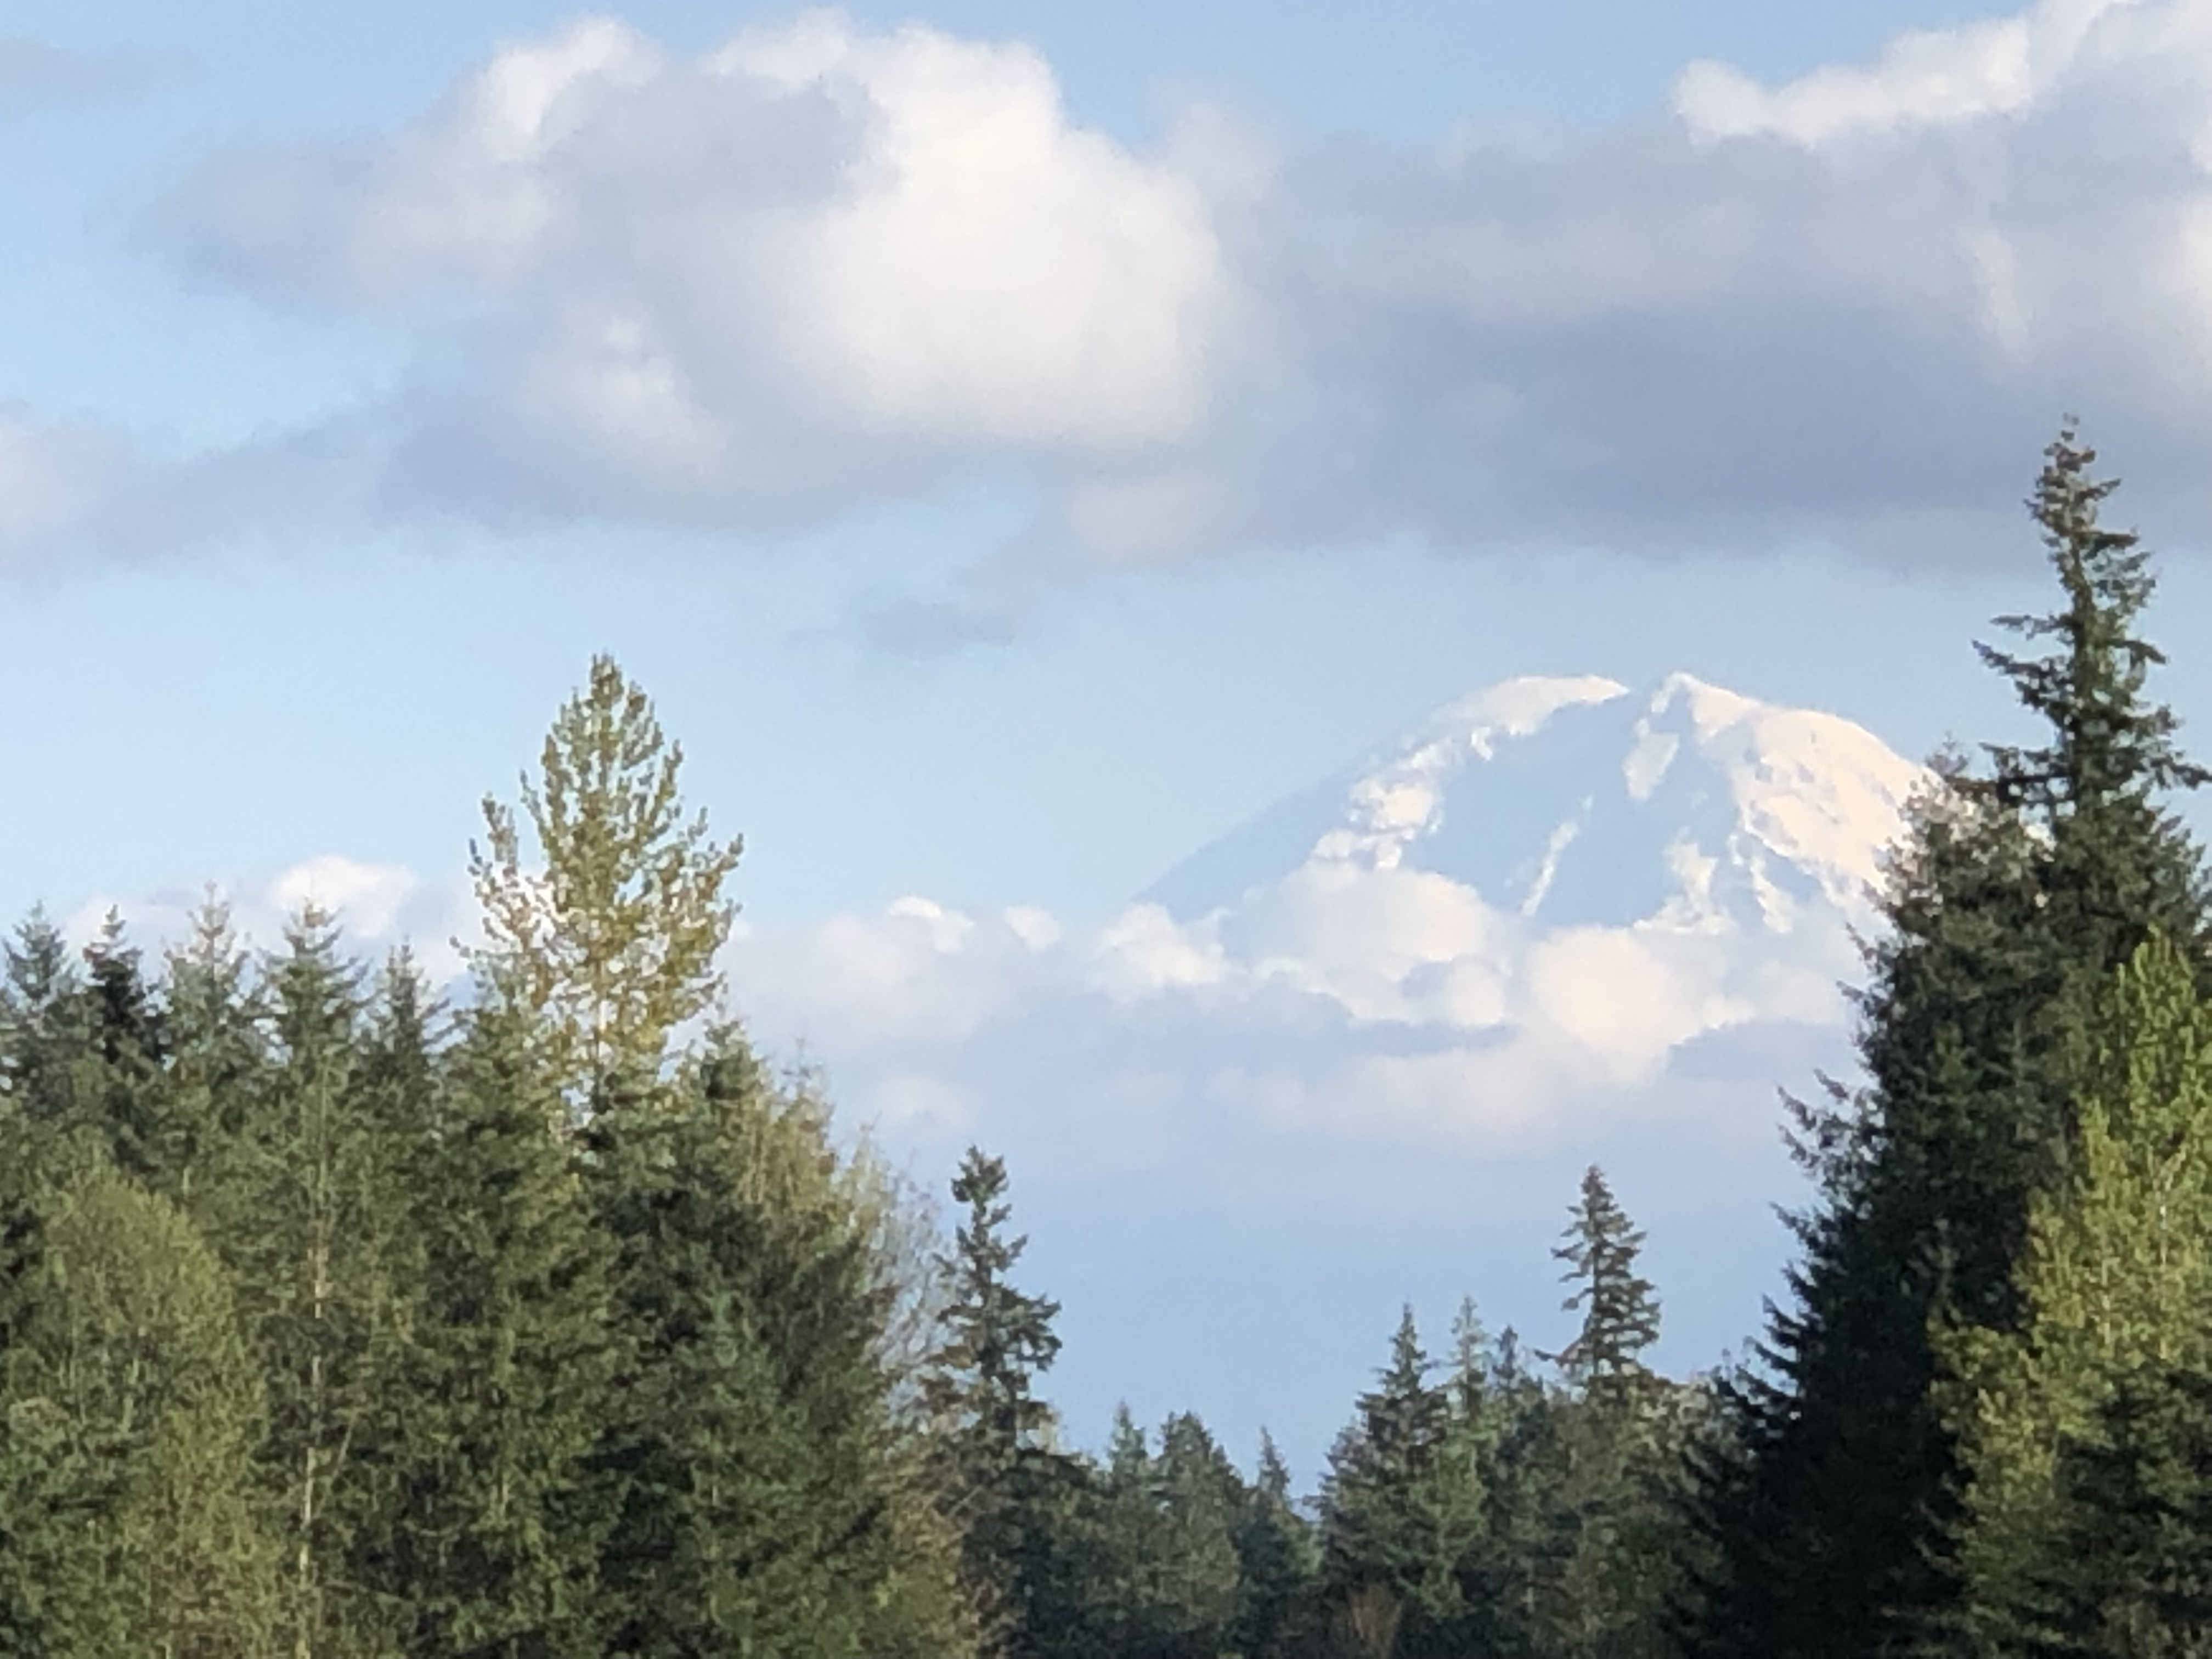 Mt. Rainier with snow and clouds, and trees in the near distance.